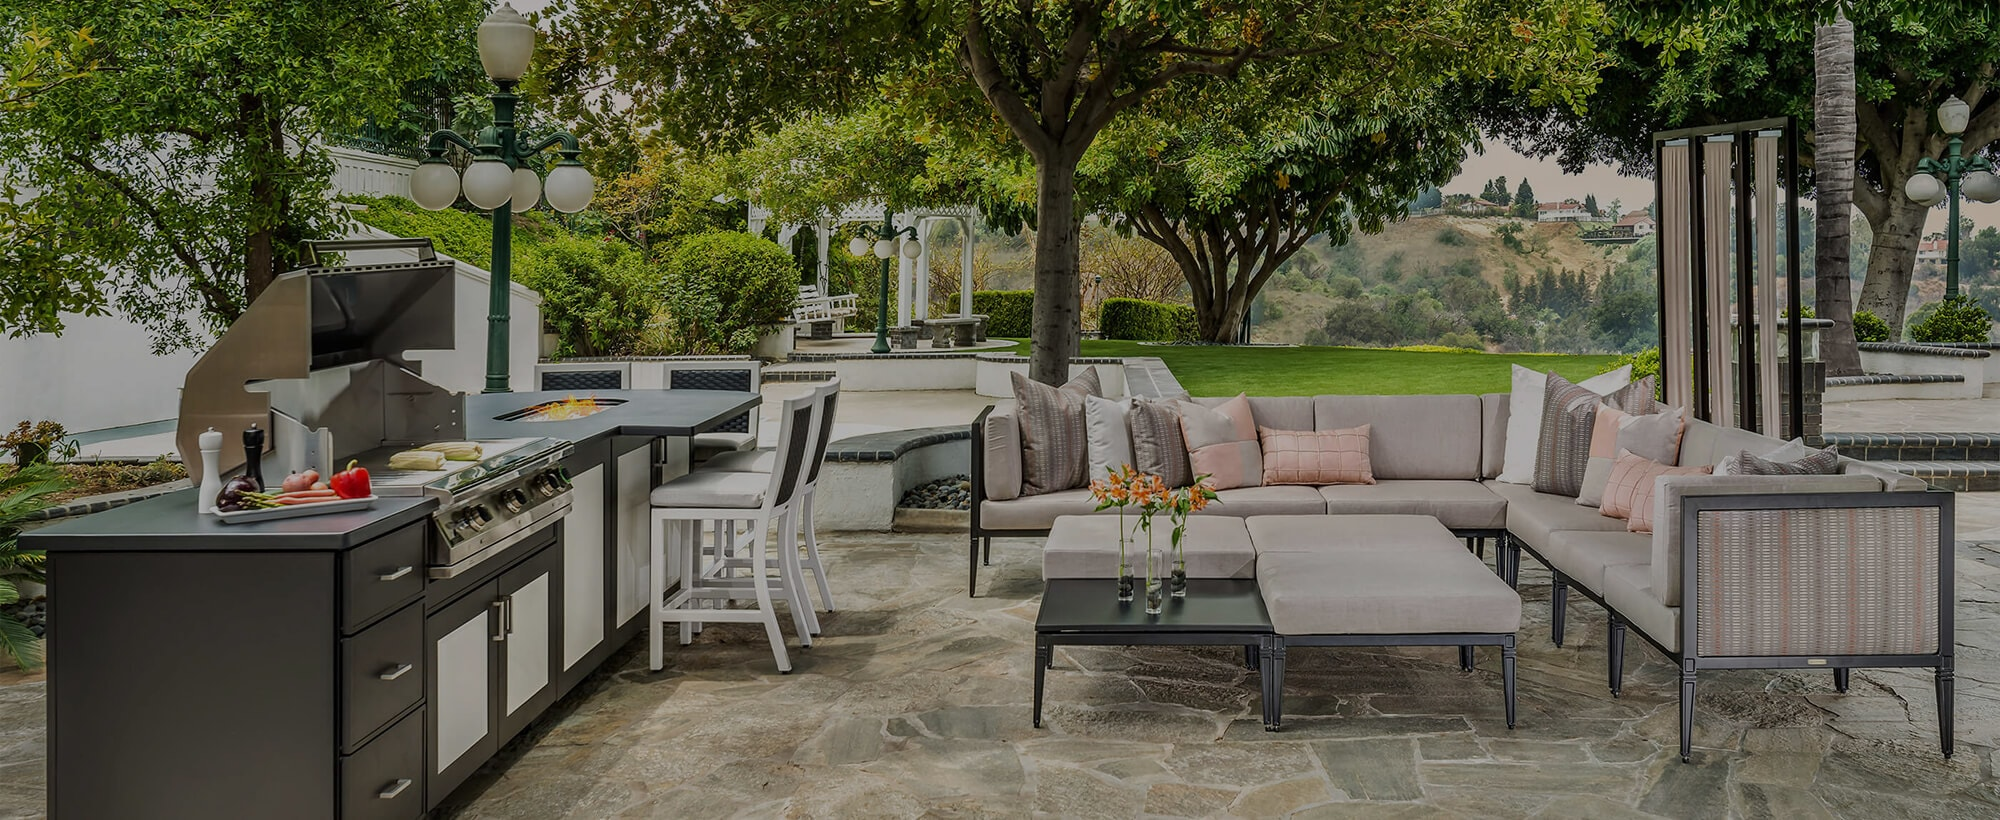 Patio Furniture In Nashville Tn.Patio Furniture Family Leisure